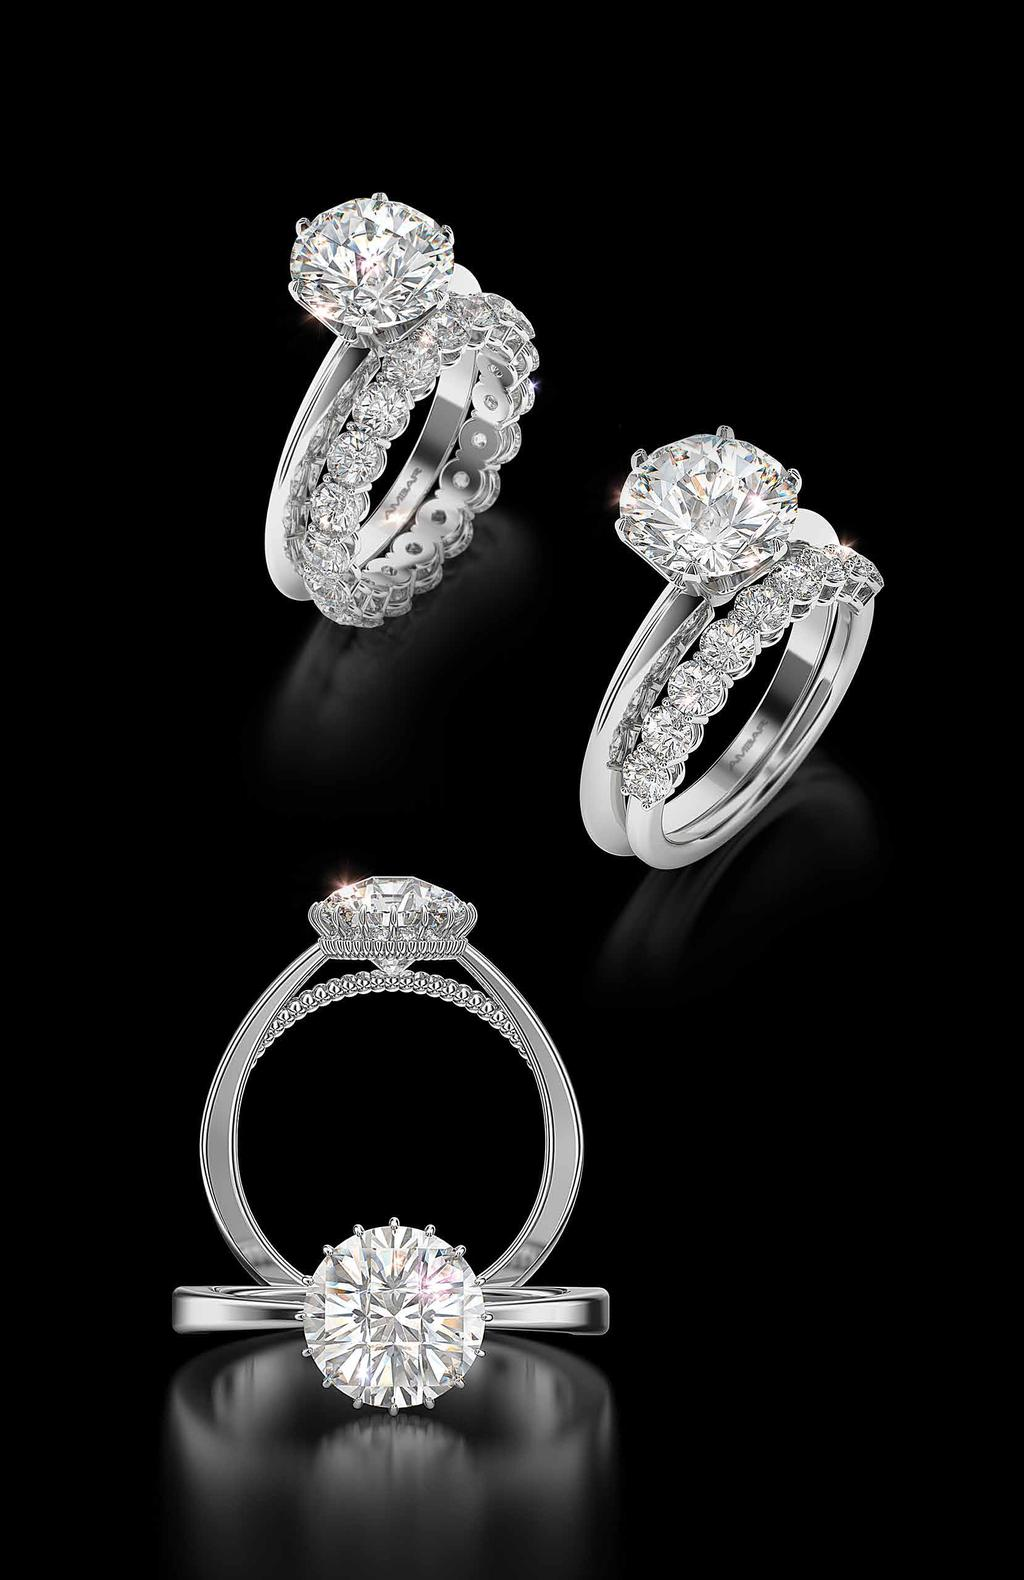 Divine Cut diamond bands are the perfect complement to a